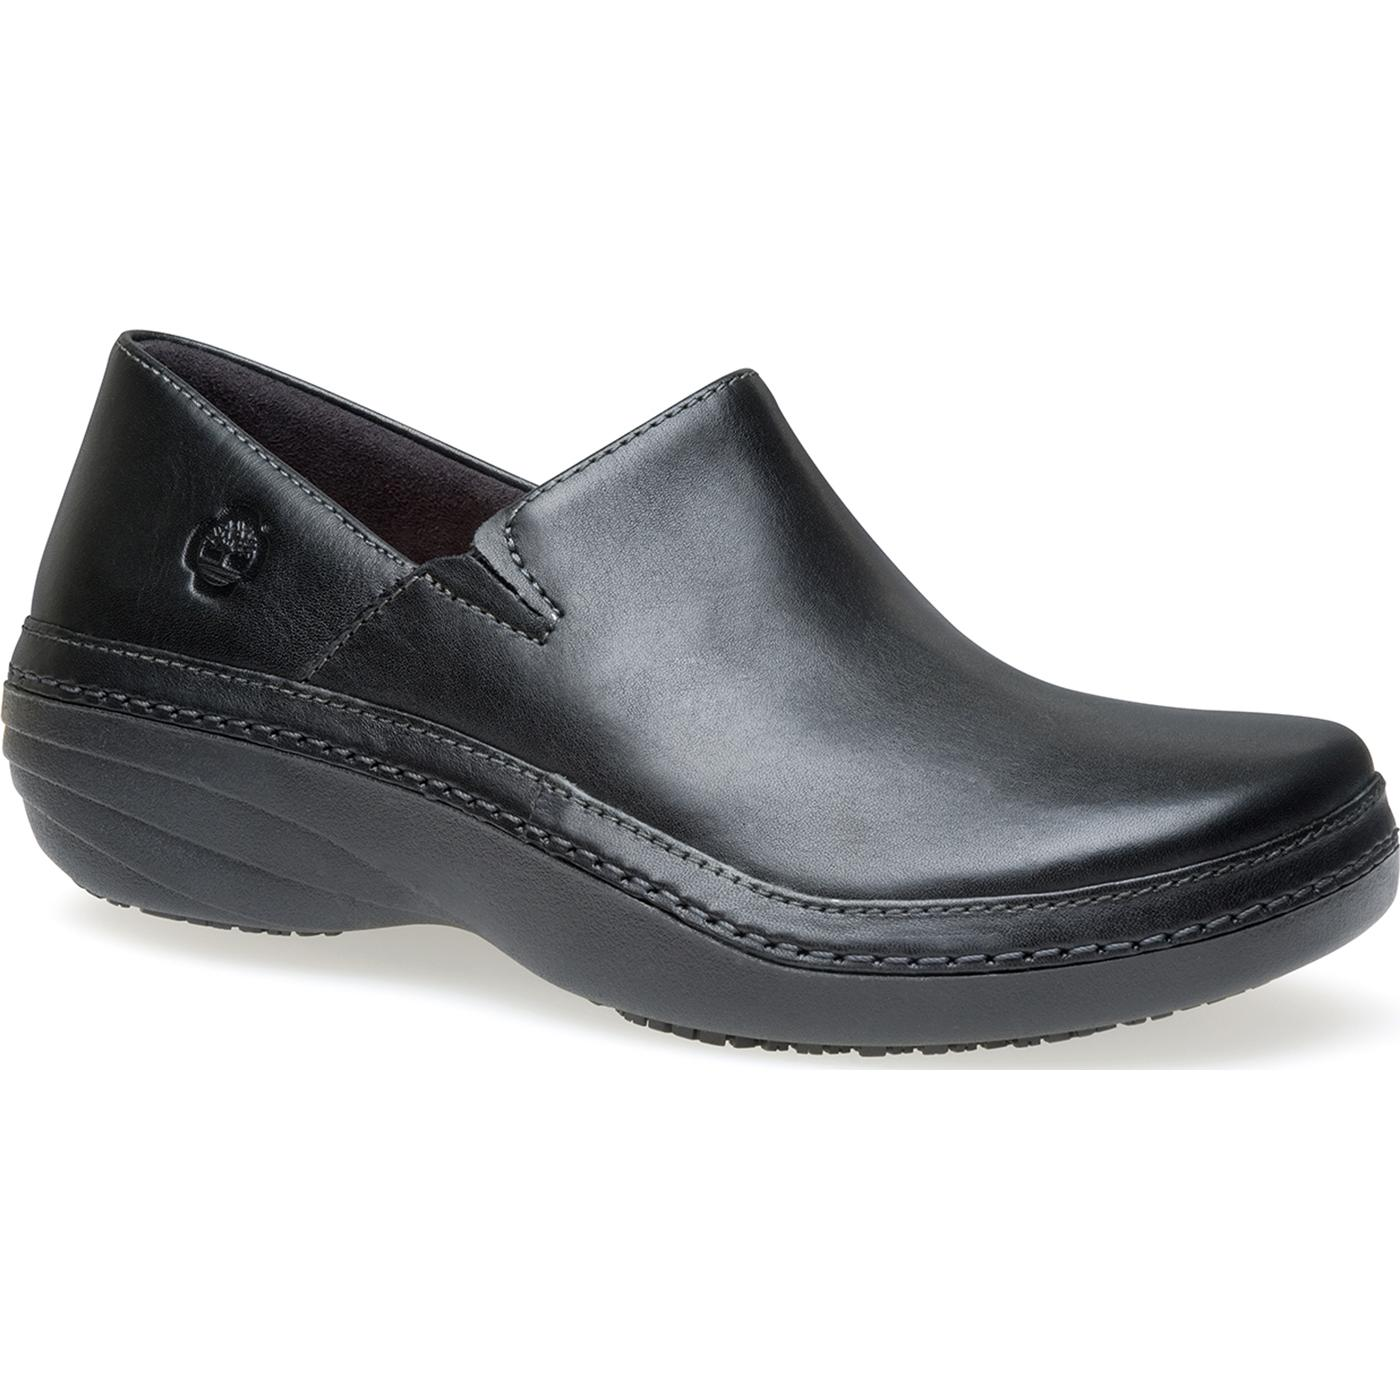 The Comfortable Slip On Shoes Womens